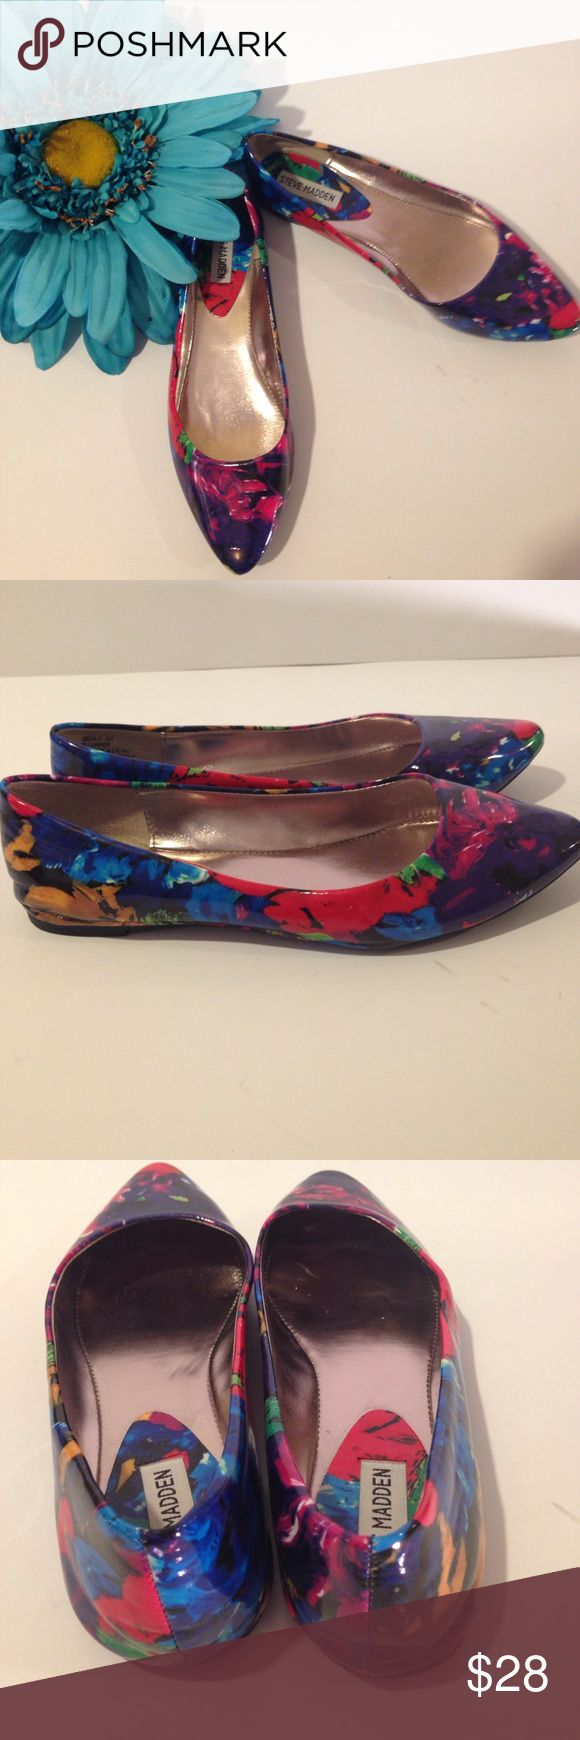 New Steve Madden IBIZA Multi Color Flat, Sz 8 New without box! Stay on point with these sophisticated pointed toe flats from Steve Madden. The Ibiza patent flat will keep your casual look sleek & chic. Multi color ballet flats literally go with everything and are a must-have essential for your wardrobe. Steve Madden Shoes Flats & Loafers